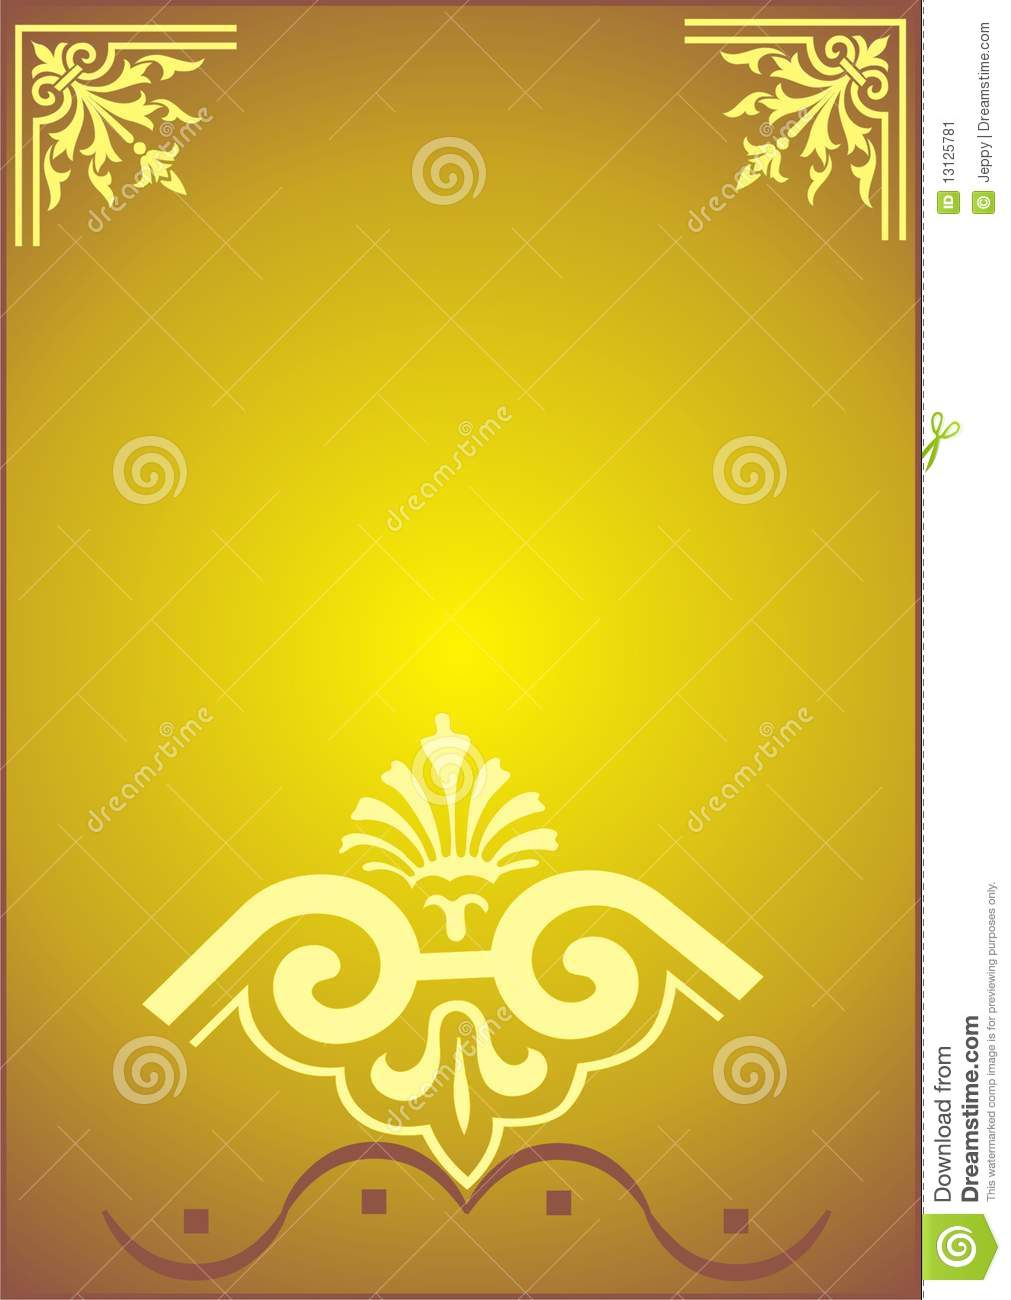 7b8c7b1a5a2 Greeting gold frame with flower borders and corners color illustration.  More similar stock illustrations